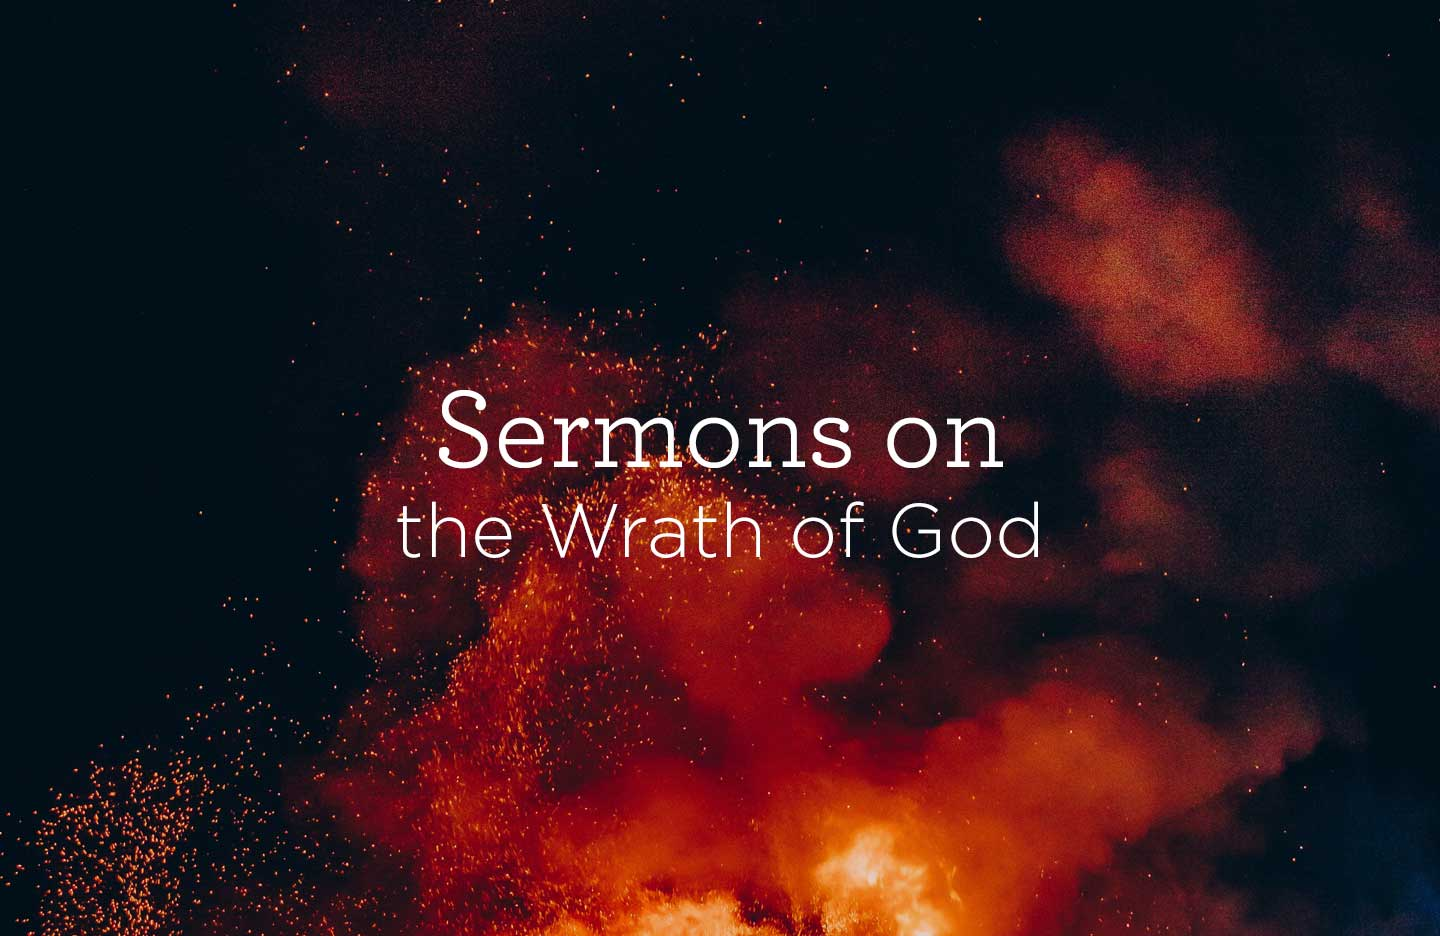 sermons-on-the-wrath-of-God.jpg